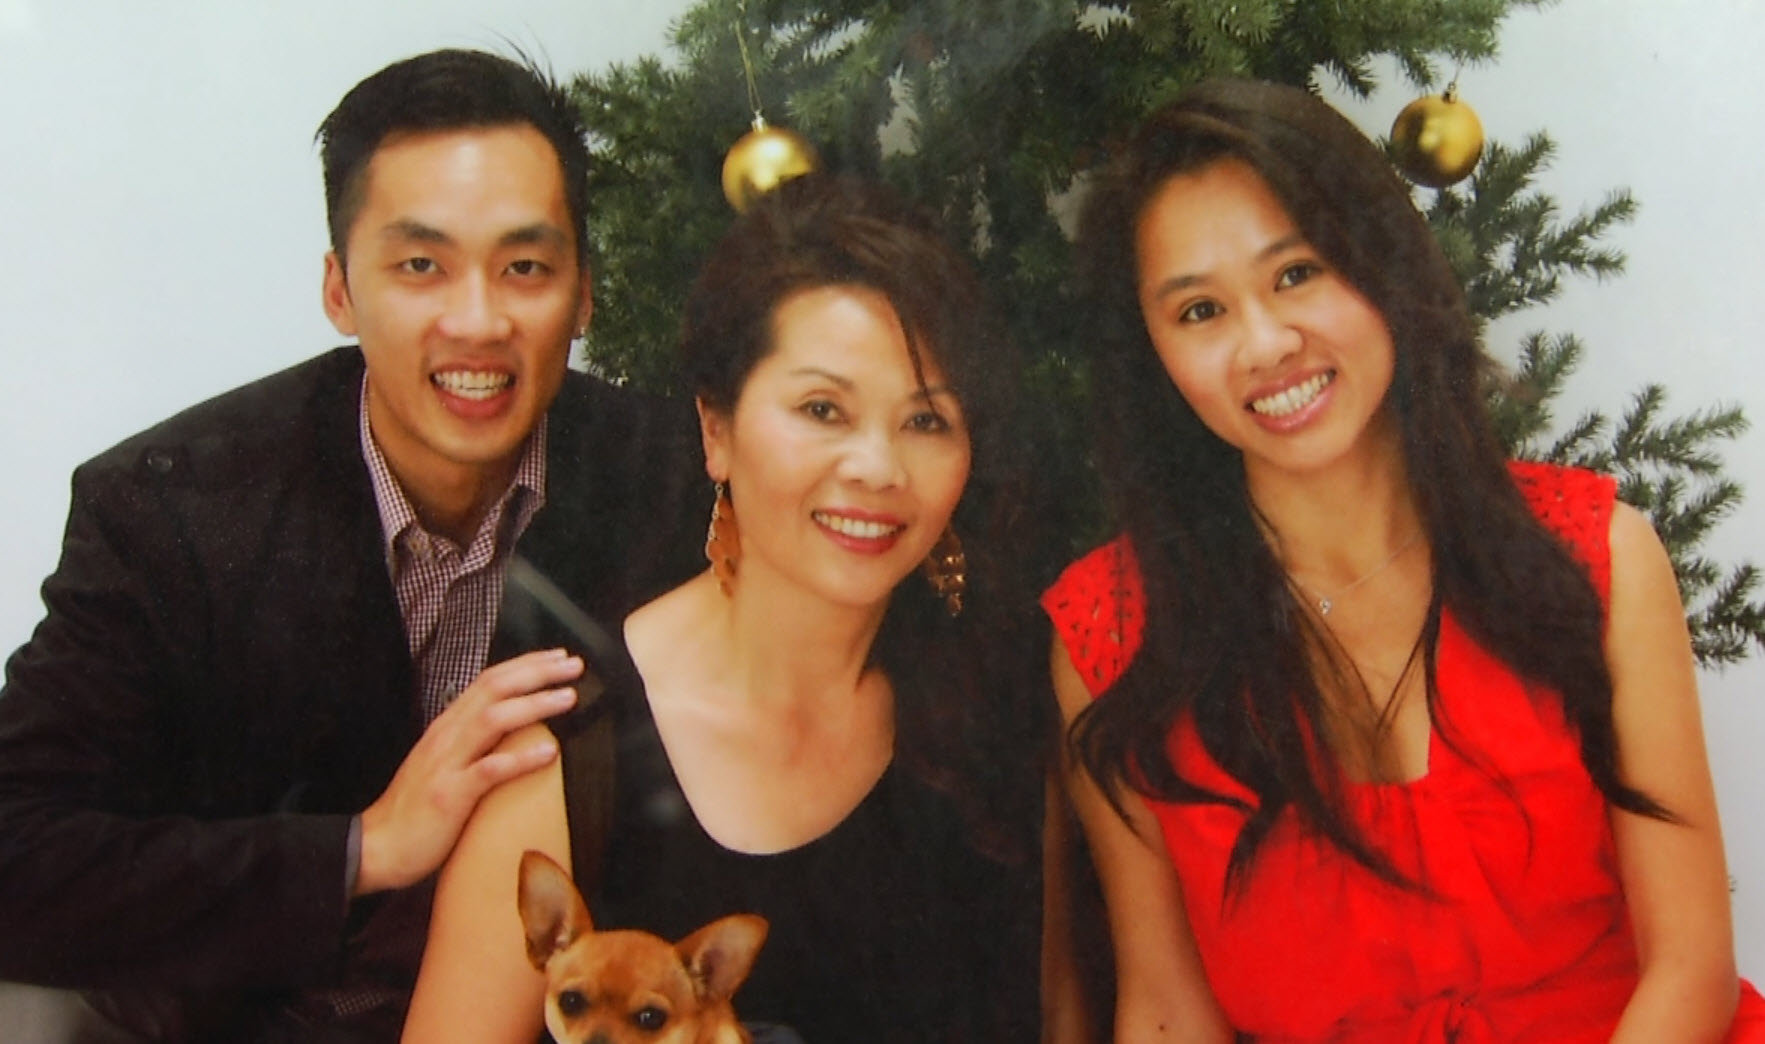 Family struggles to cope with loss after Tin Nguyen, 31-year-old, killed in San Bernardino mass shooting on Wednesday. (Published Dec. 5, 2015.)